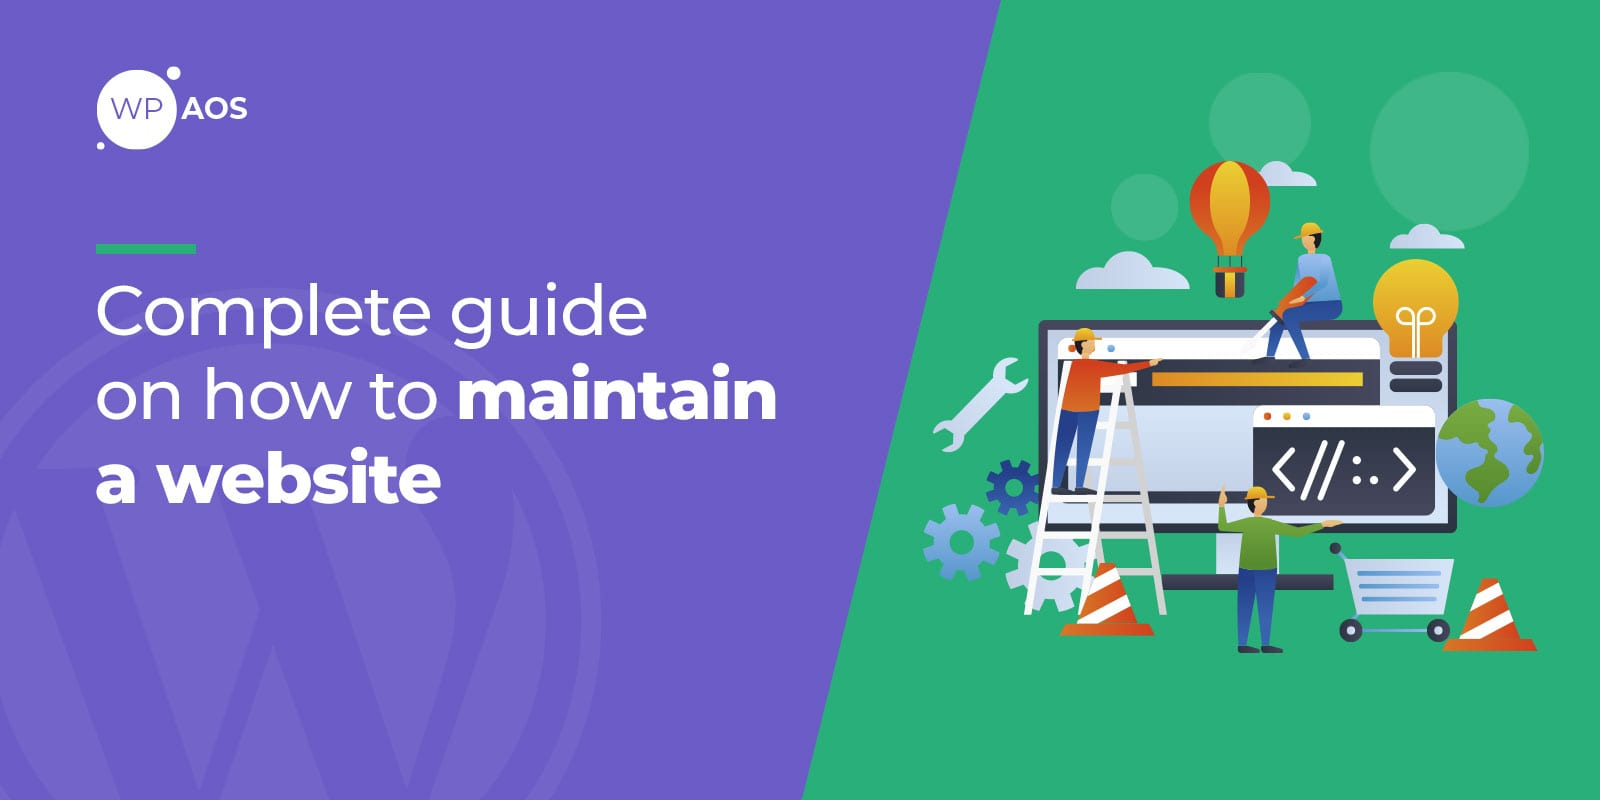 How to Maintain a Website, wordpress maintenance, woocommerce support, wpaos